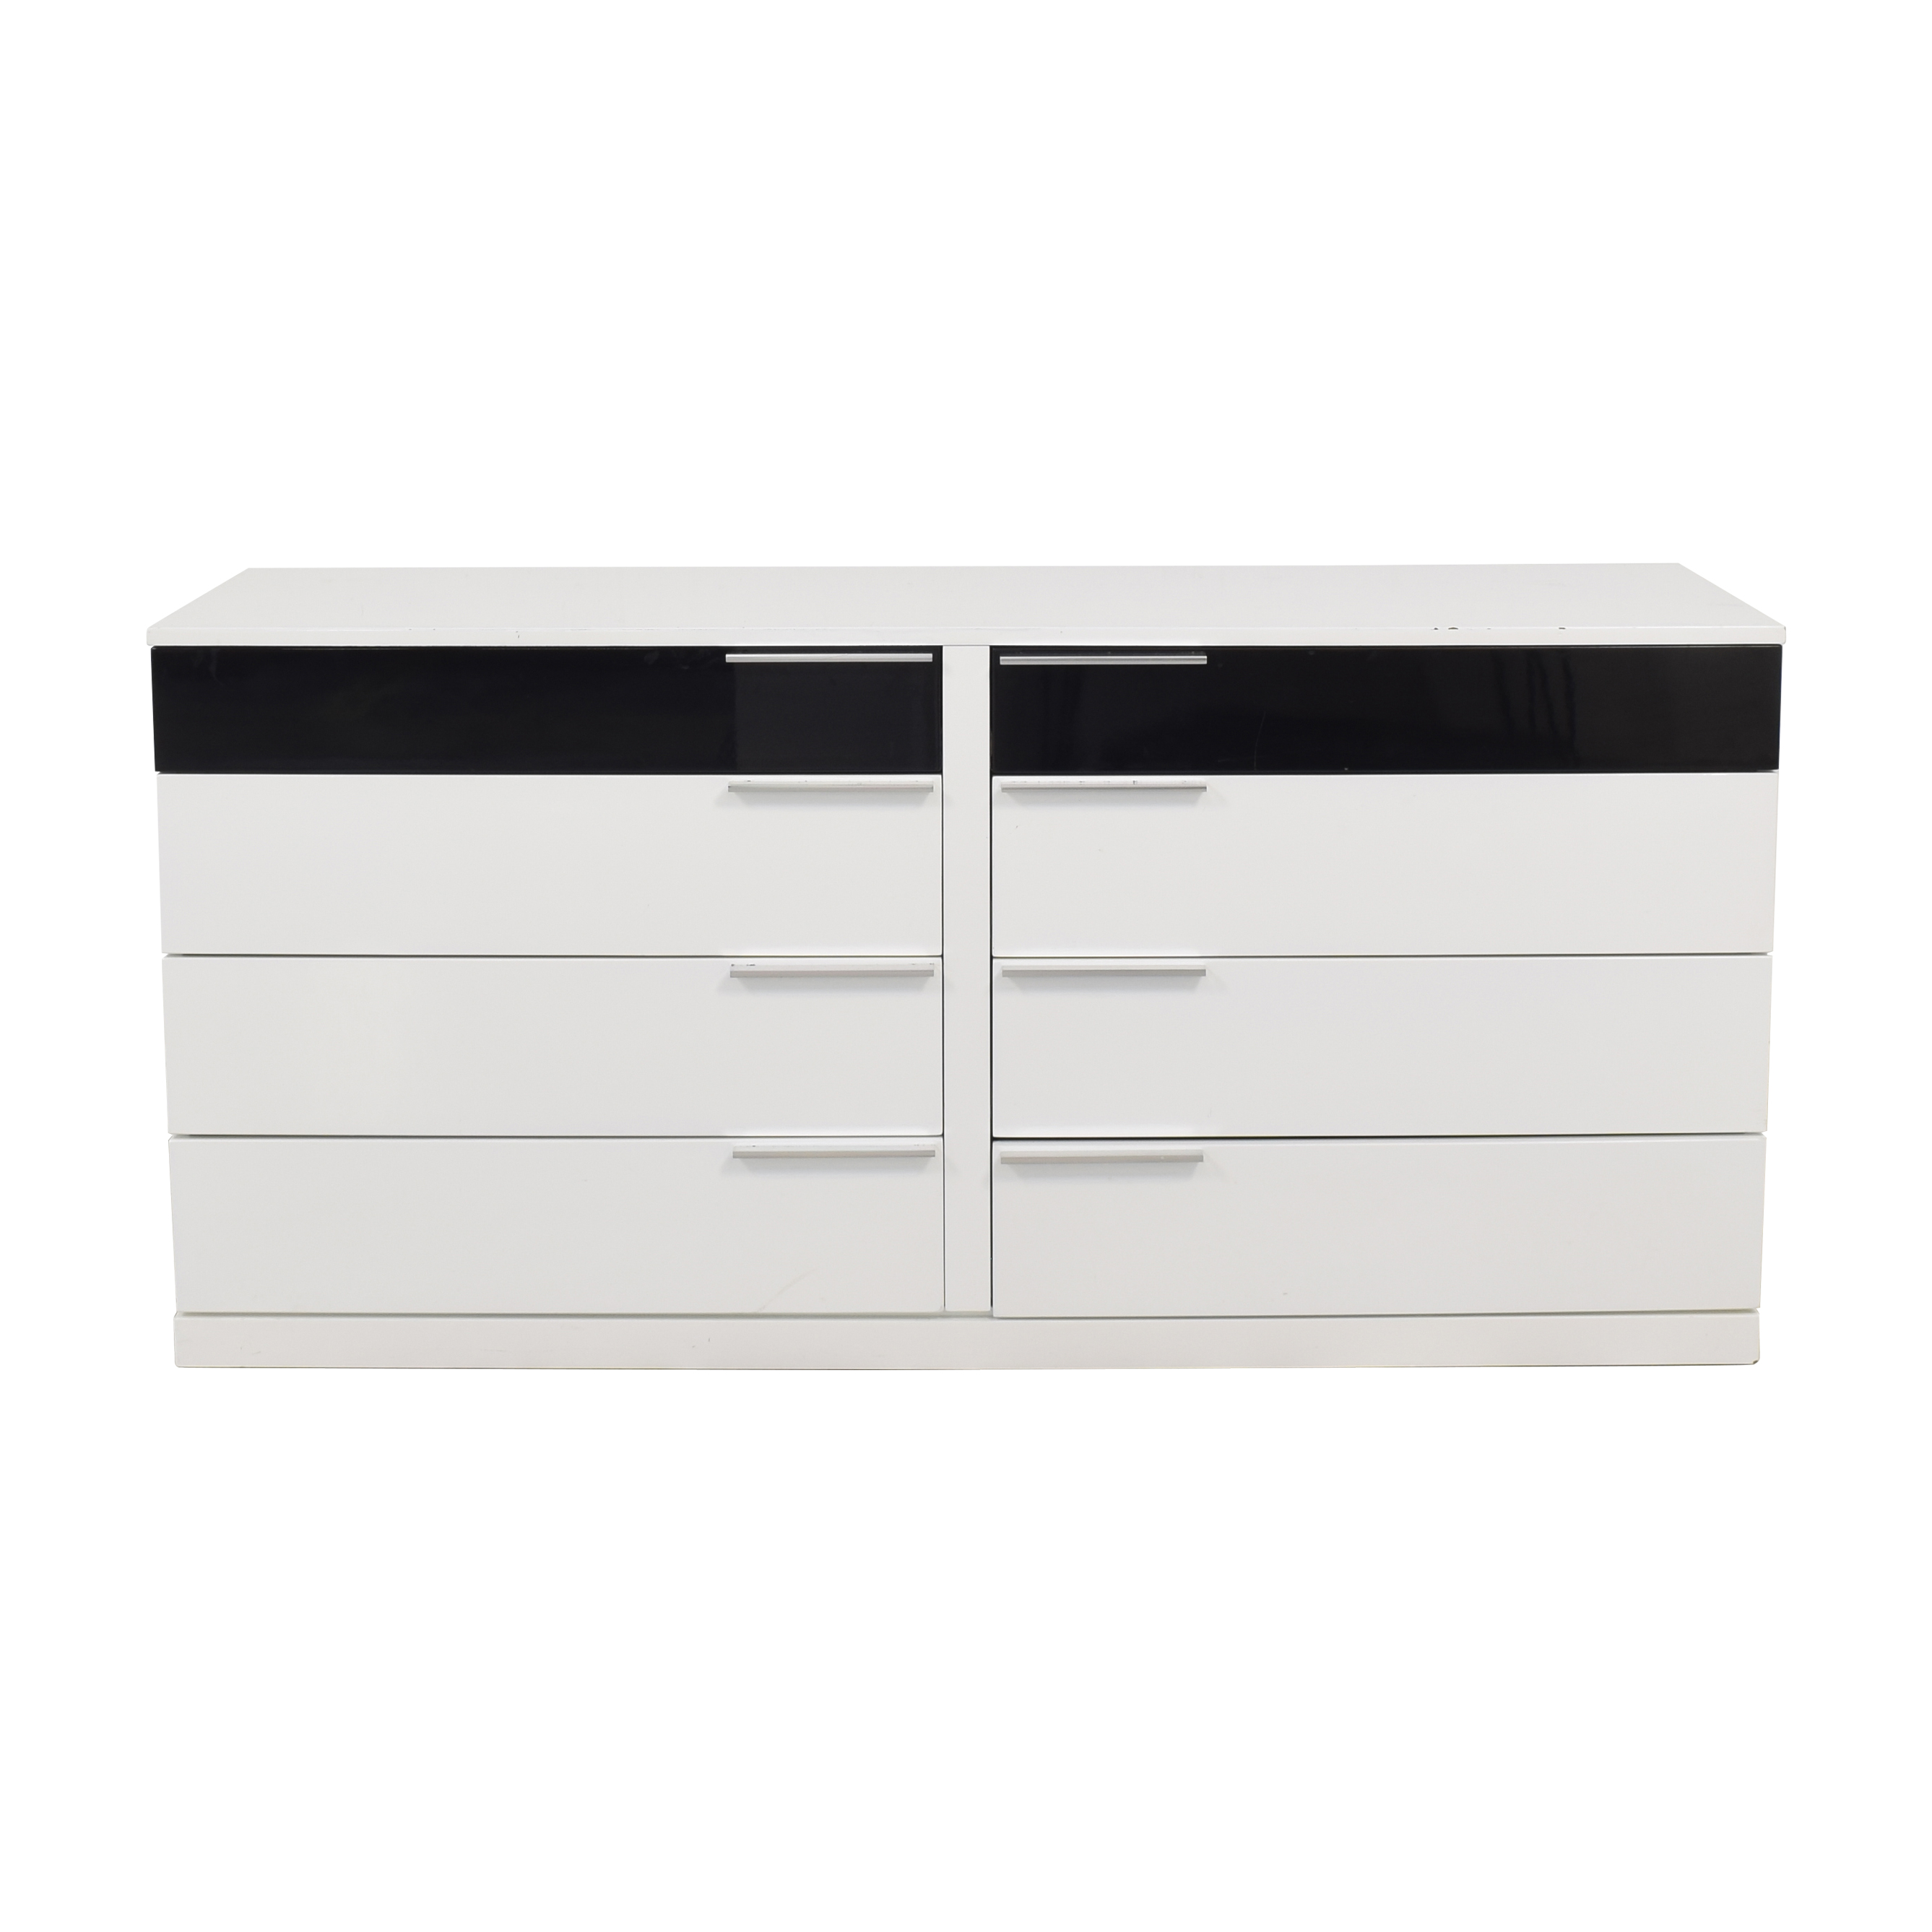 Contemporary Eight Drawer Dresser for sale